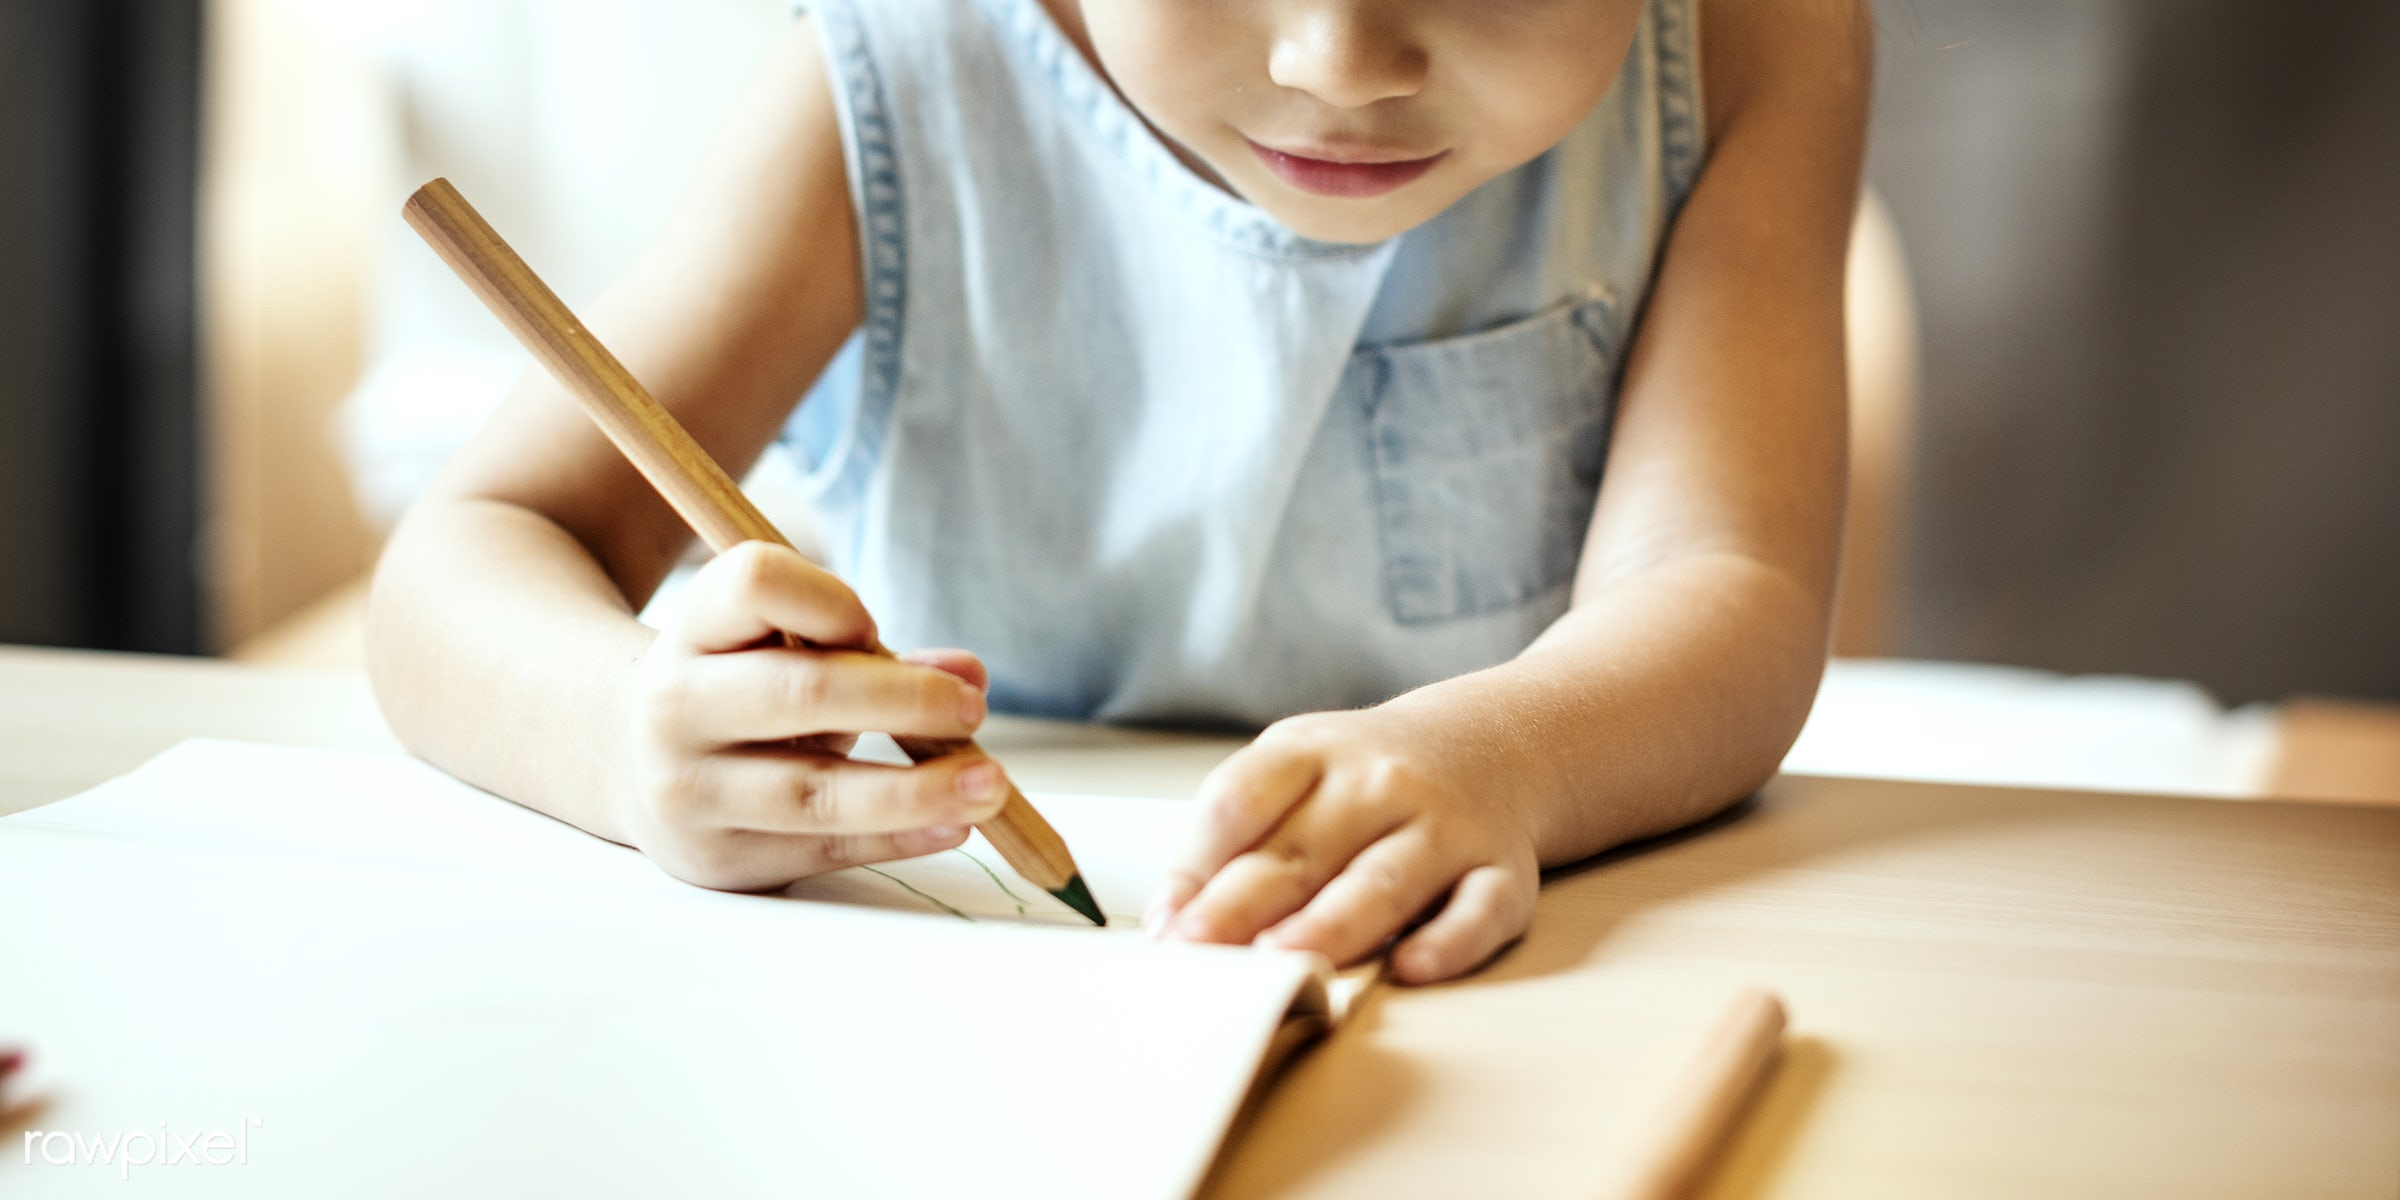 child, happy, learning, book, education, girl, leisure, house, coloring, create, female, woman, activity, adolescence, art,...